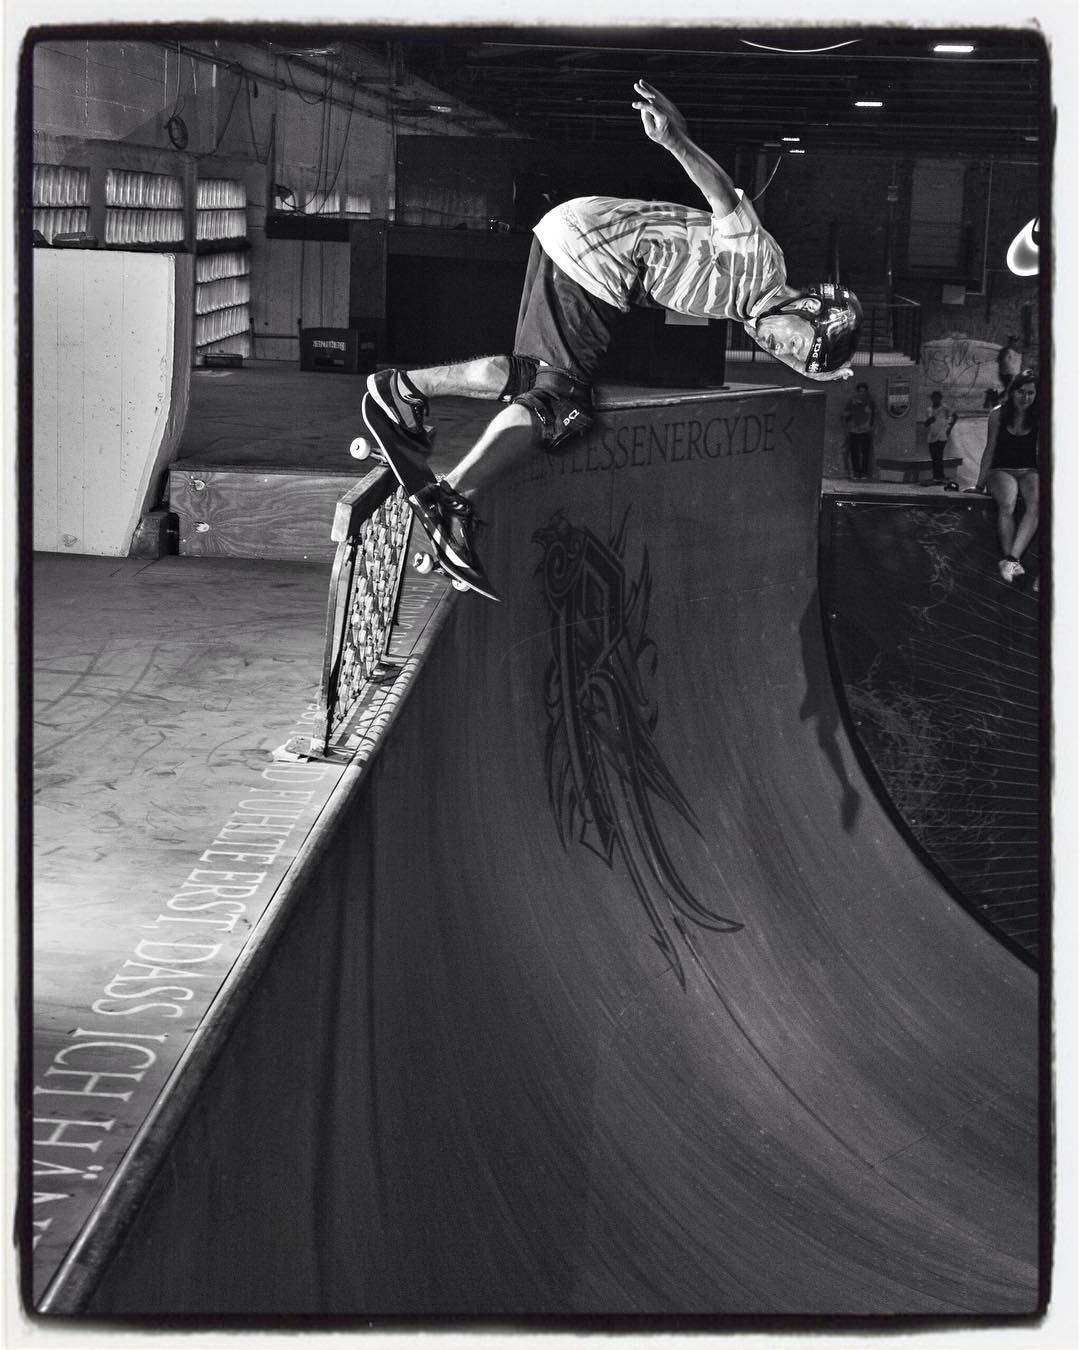 #flashbackfriday Jürgen Horrwarth rules!!! Monty grind on a rail on his ramp a few years ago. #vert #ramp #halfpipe #skateboarding #bailgun #gerdrieger.com